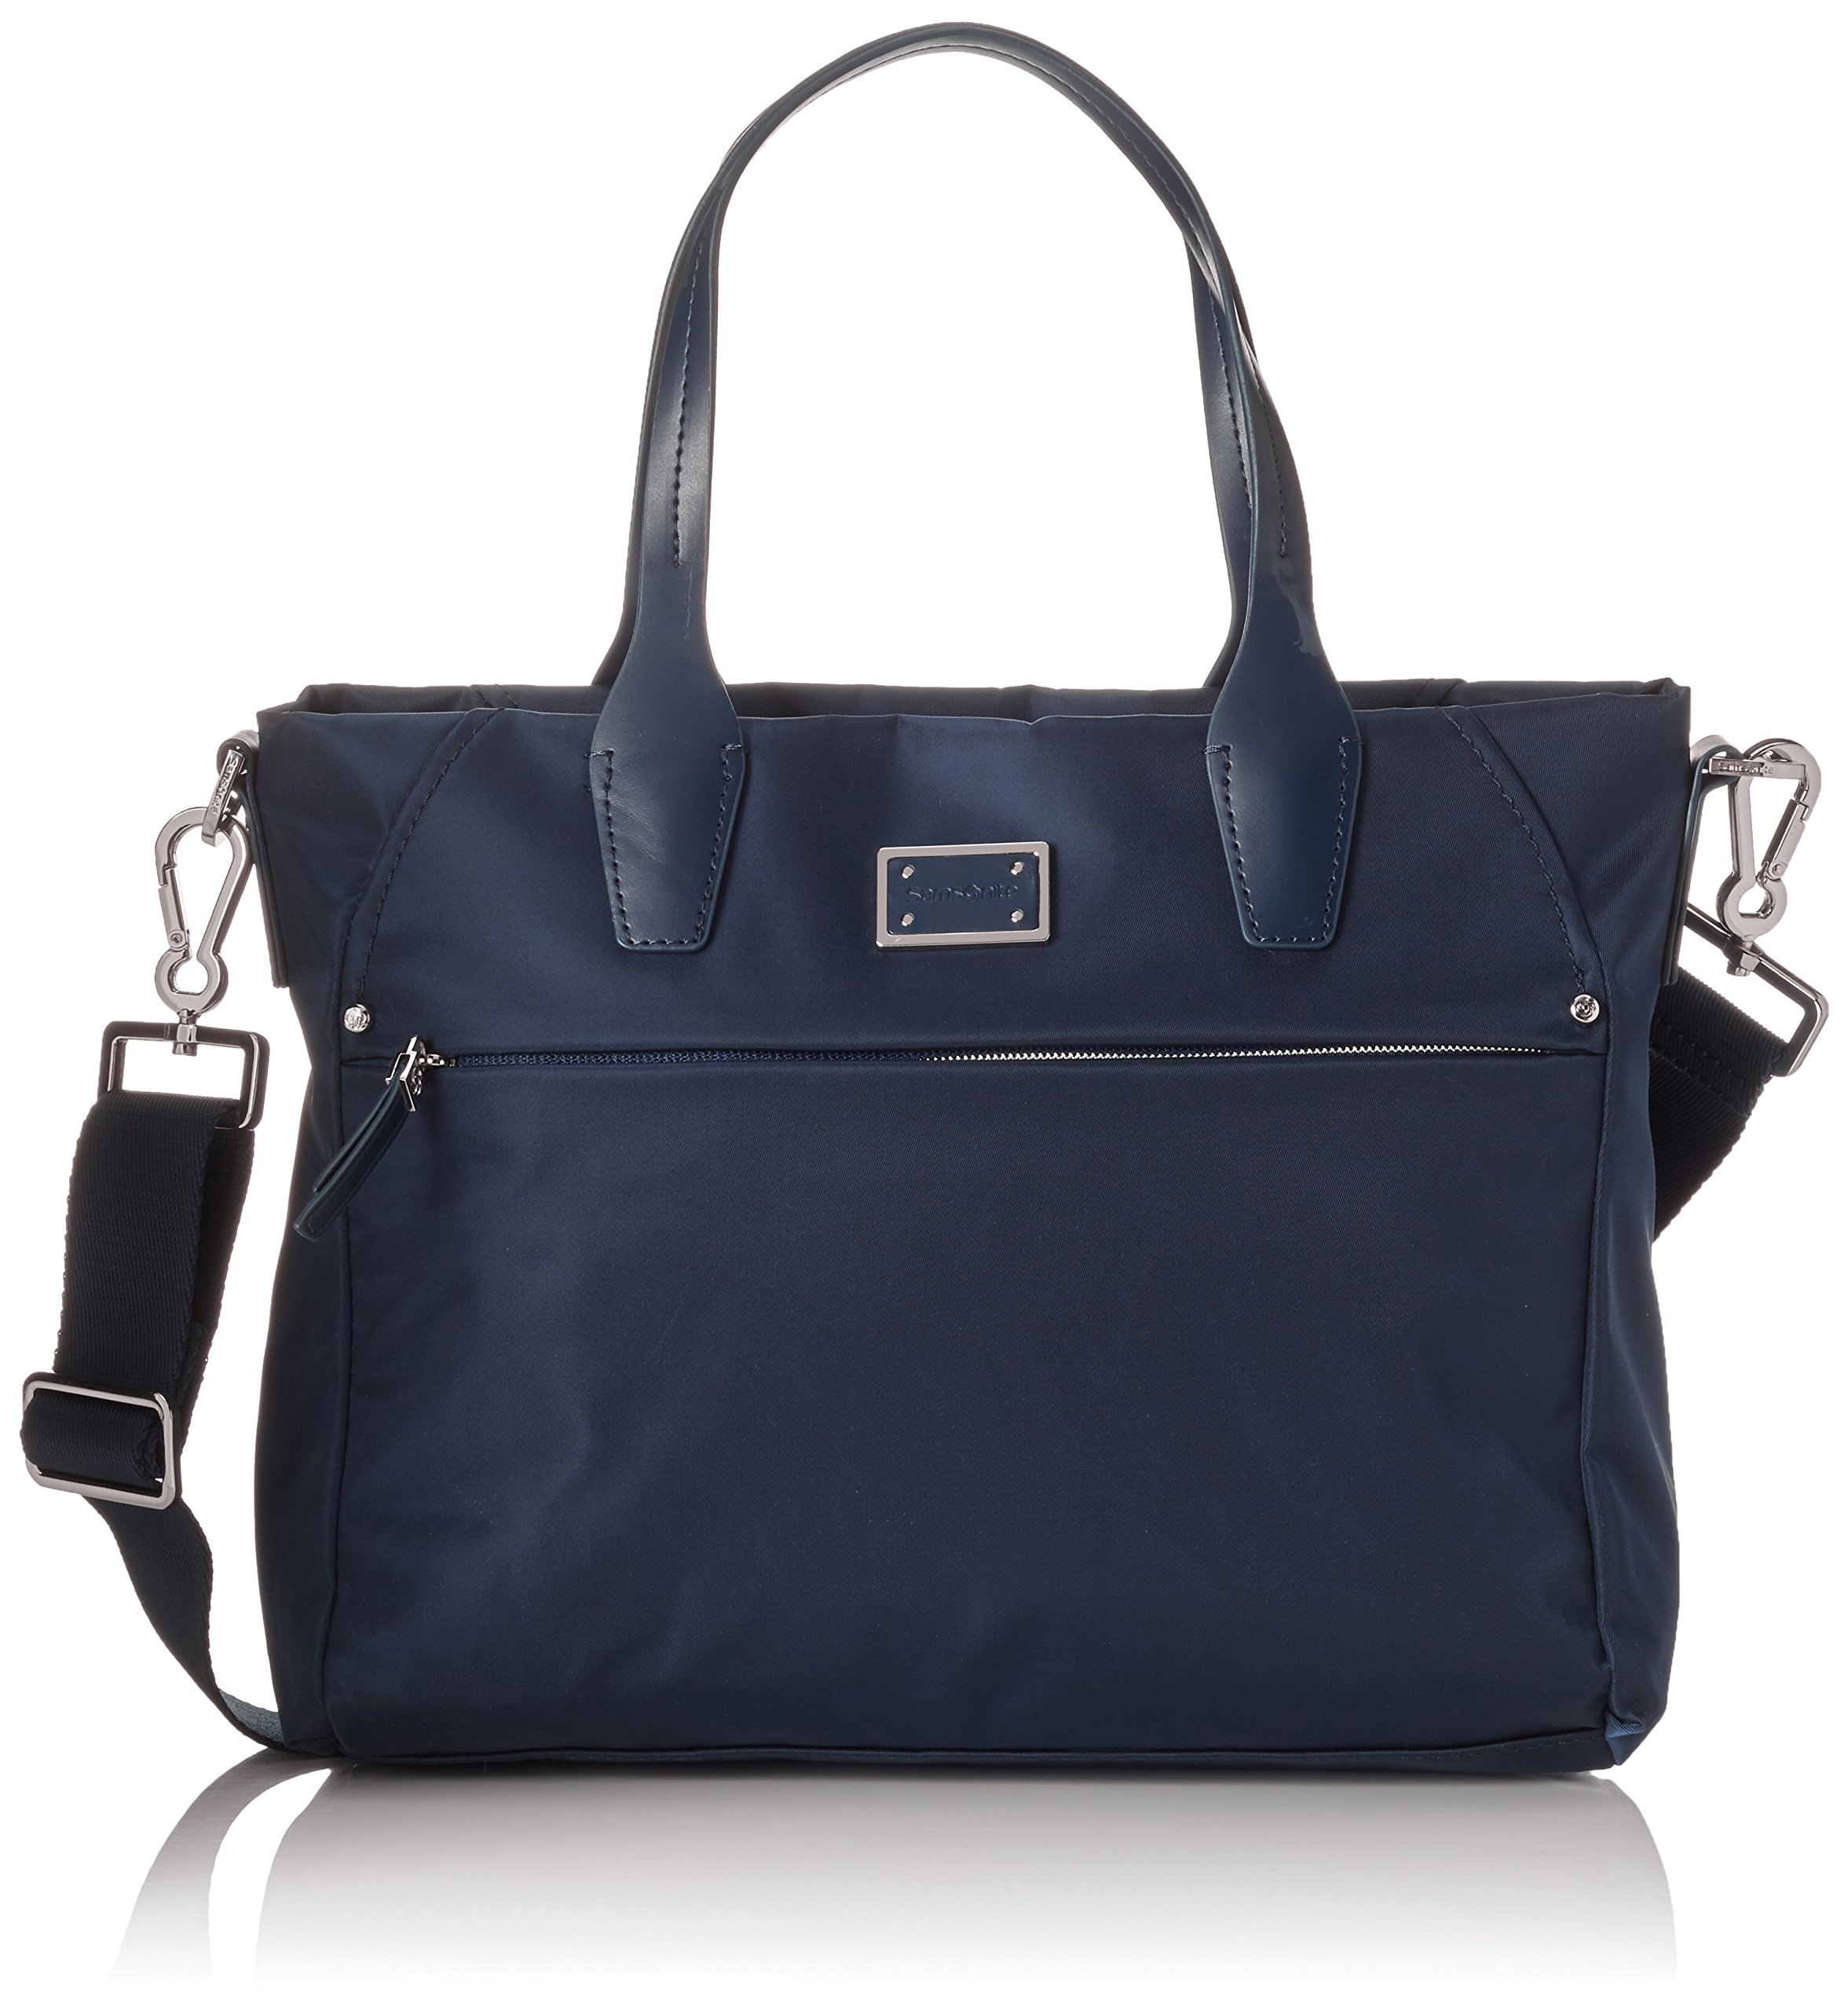 Samsonite City Air Tote Bag iPad Borsa a mano, Nylon, Dark Blue, 30 cm